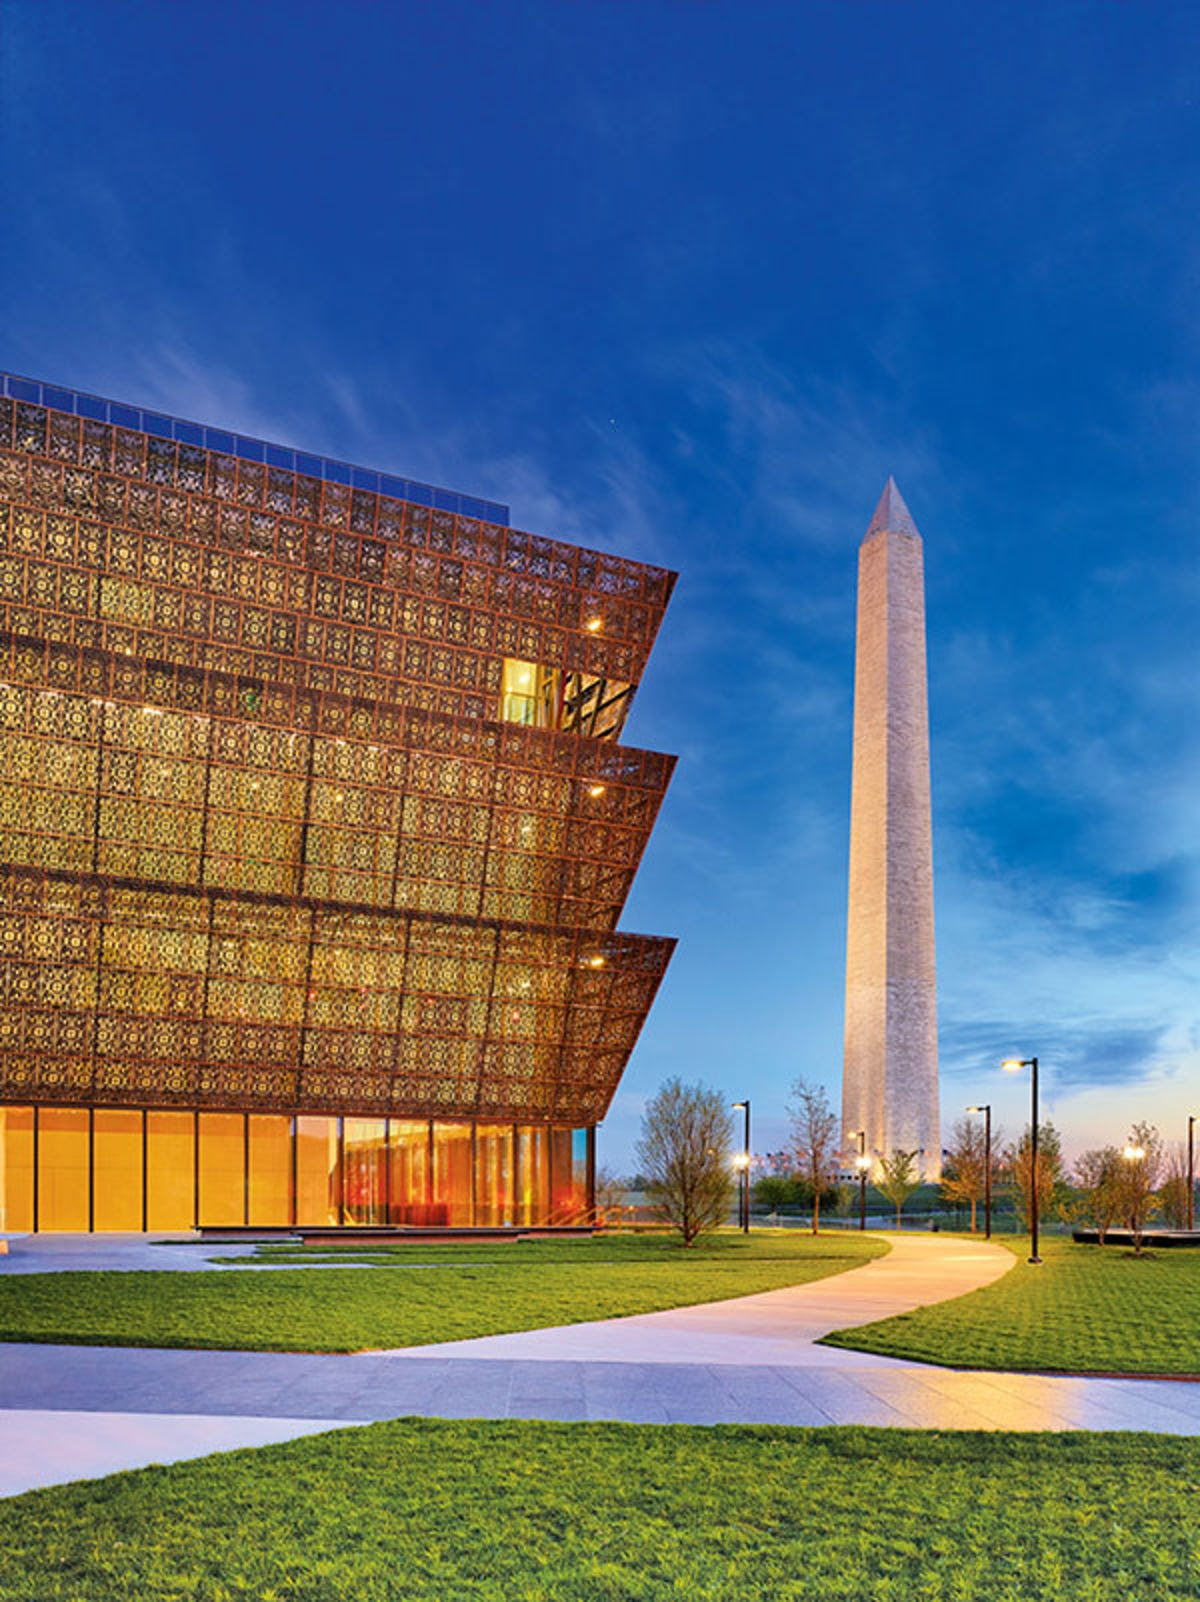 Nmaahc Design Foundry